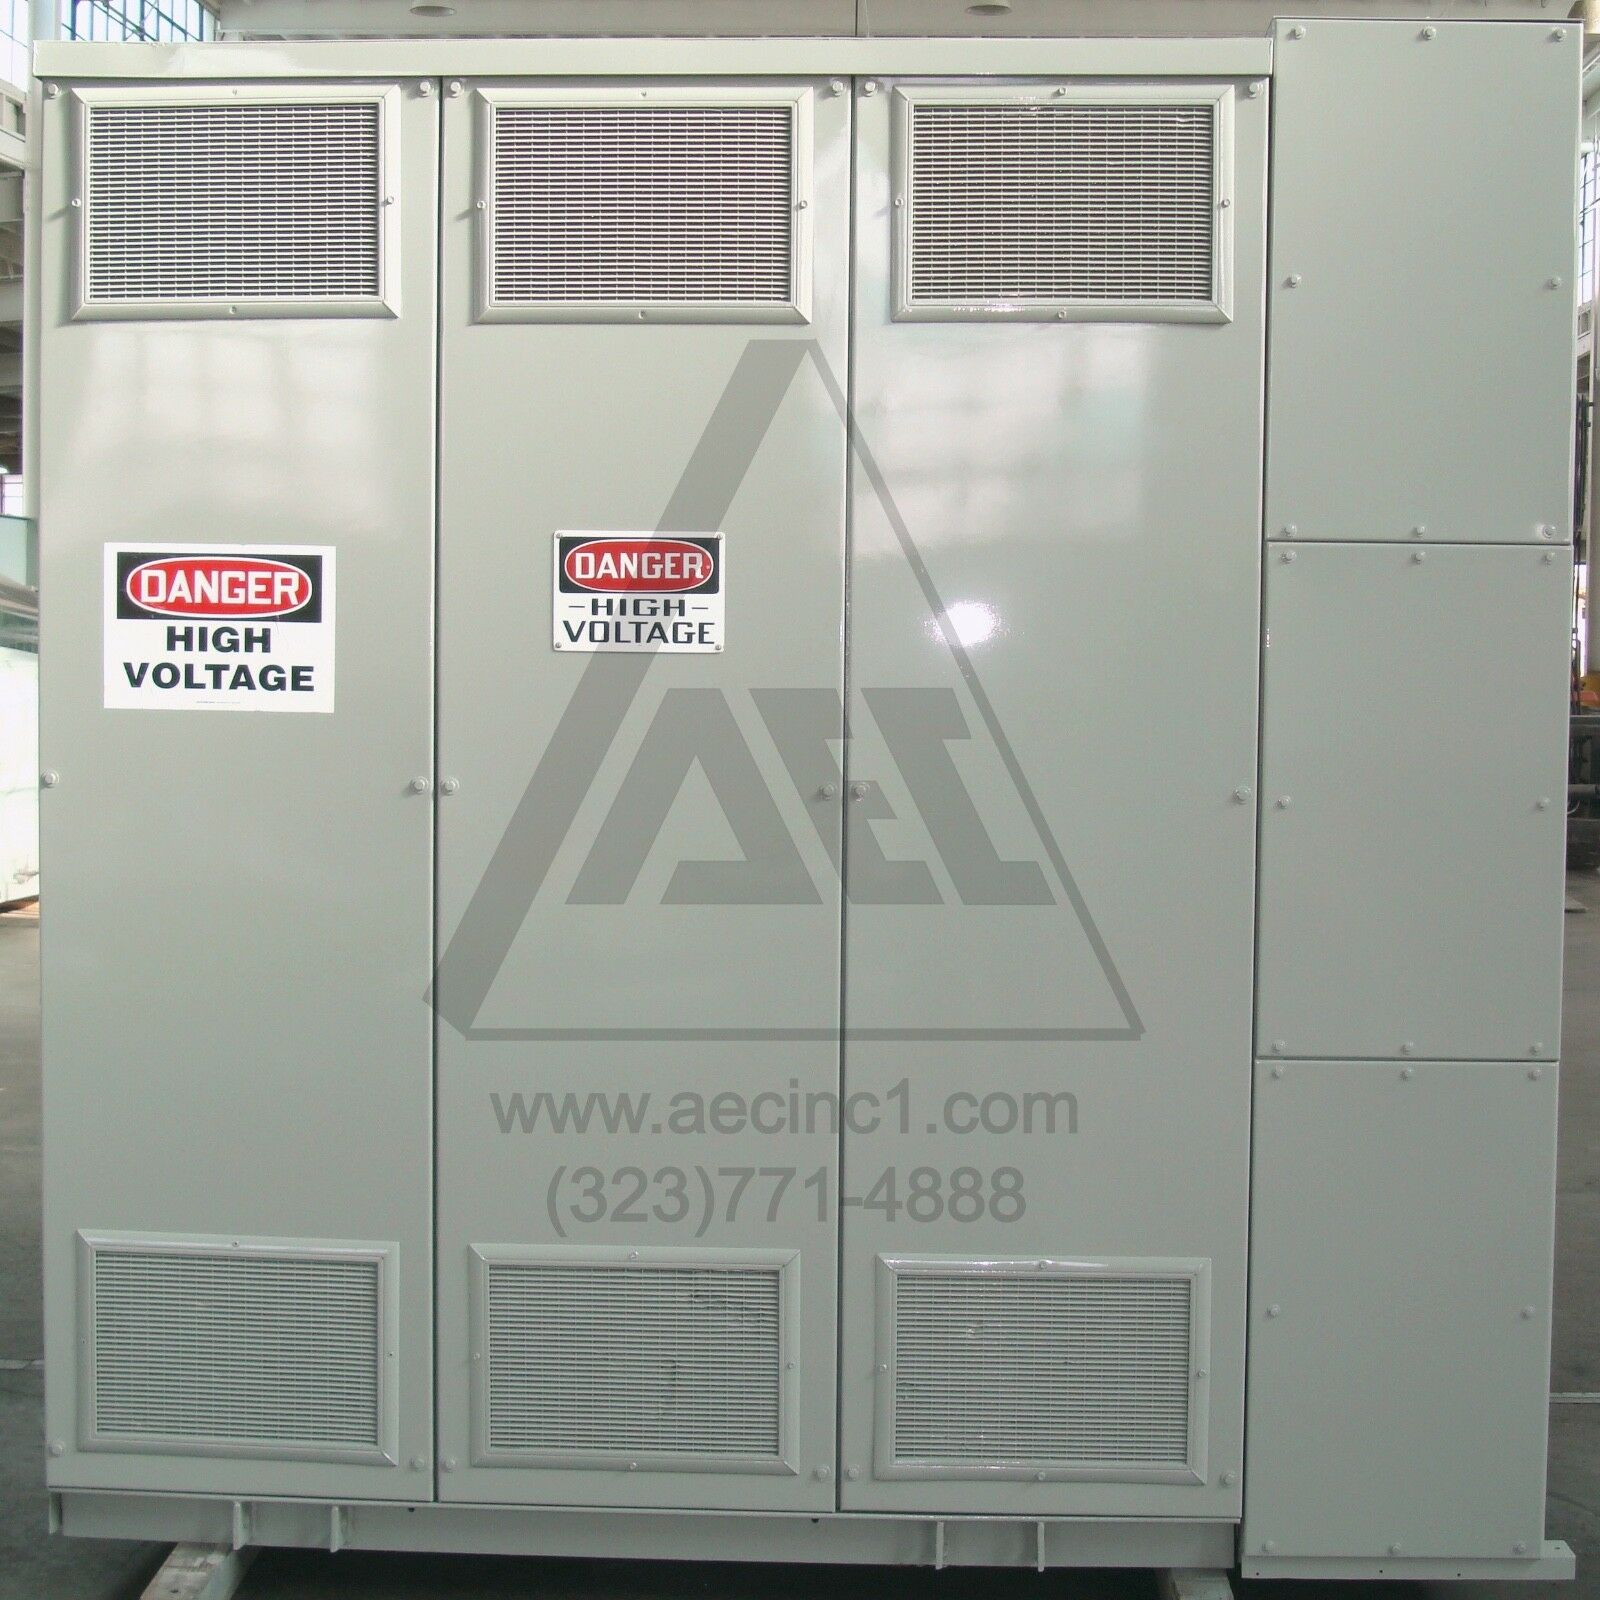 1500/2000 kVA, 3 Phase Dry Type Transformer 4160 - 480Y/277, 150ºC Rise Temp